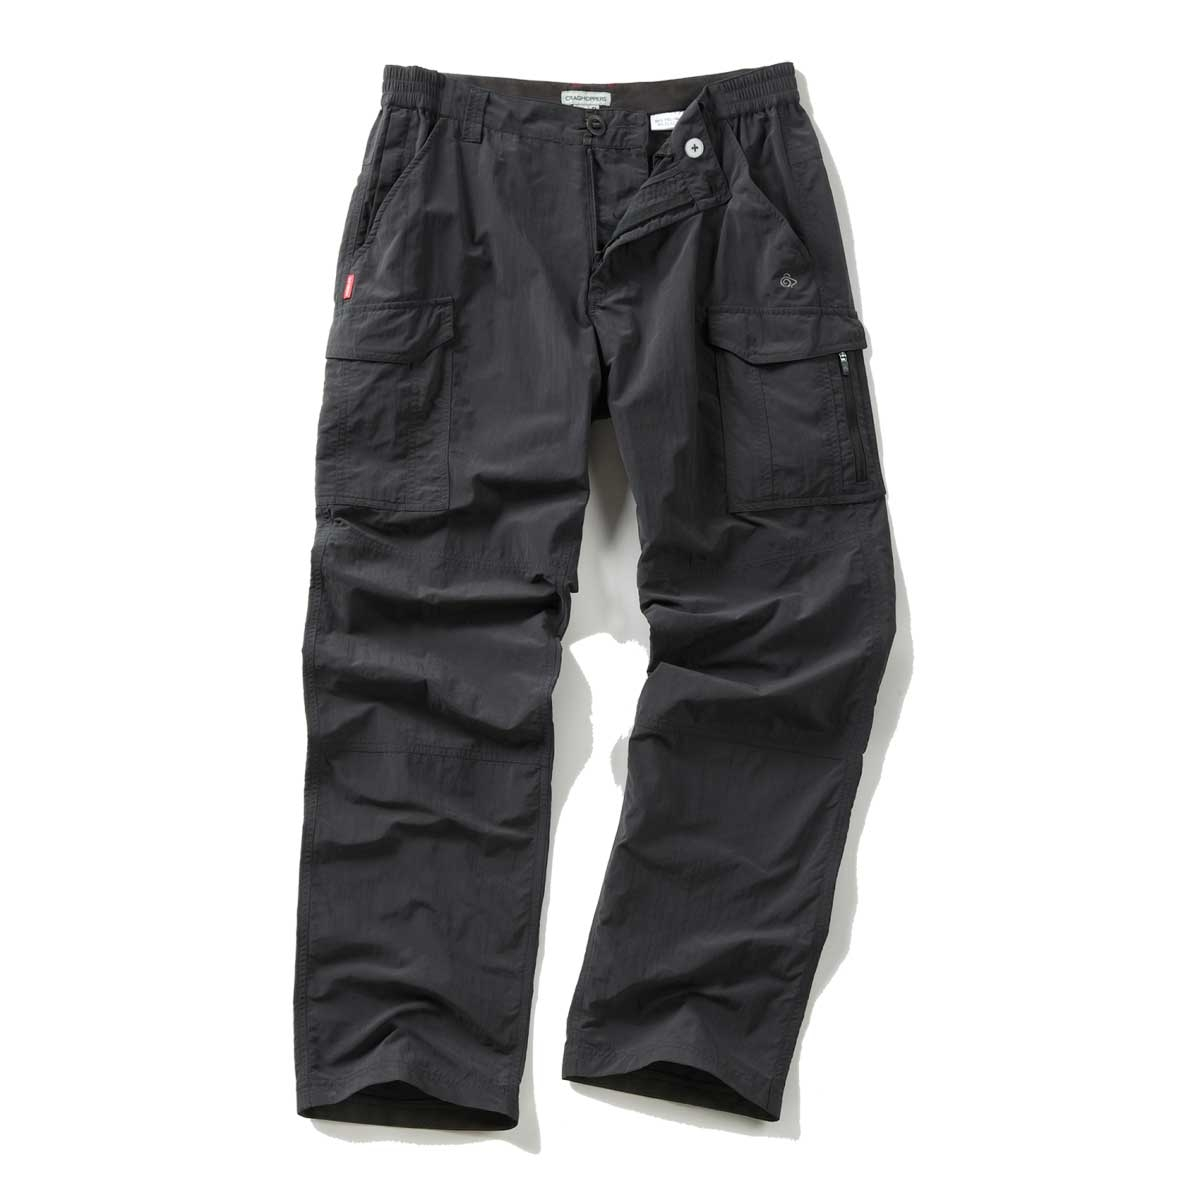 Image of Craghoppers NosiLife Cargo Trousers - Black Pepper 2bf0bde76